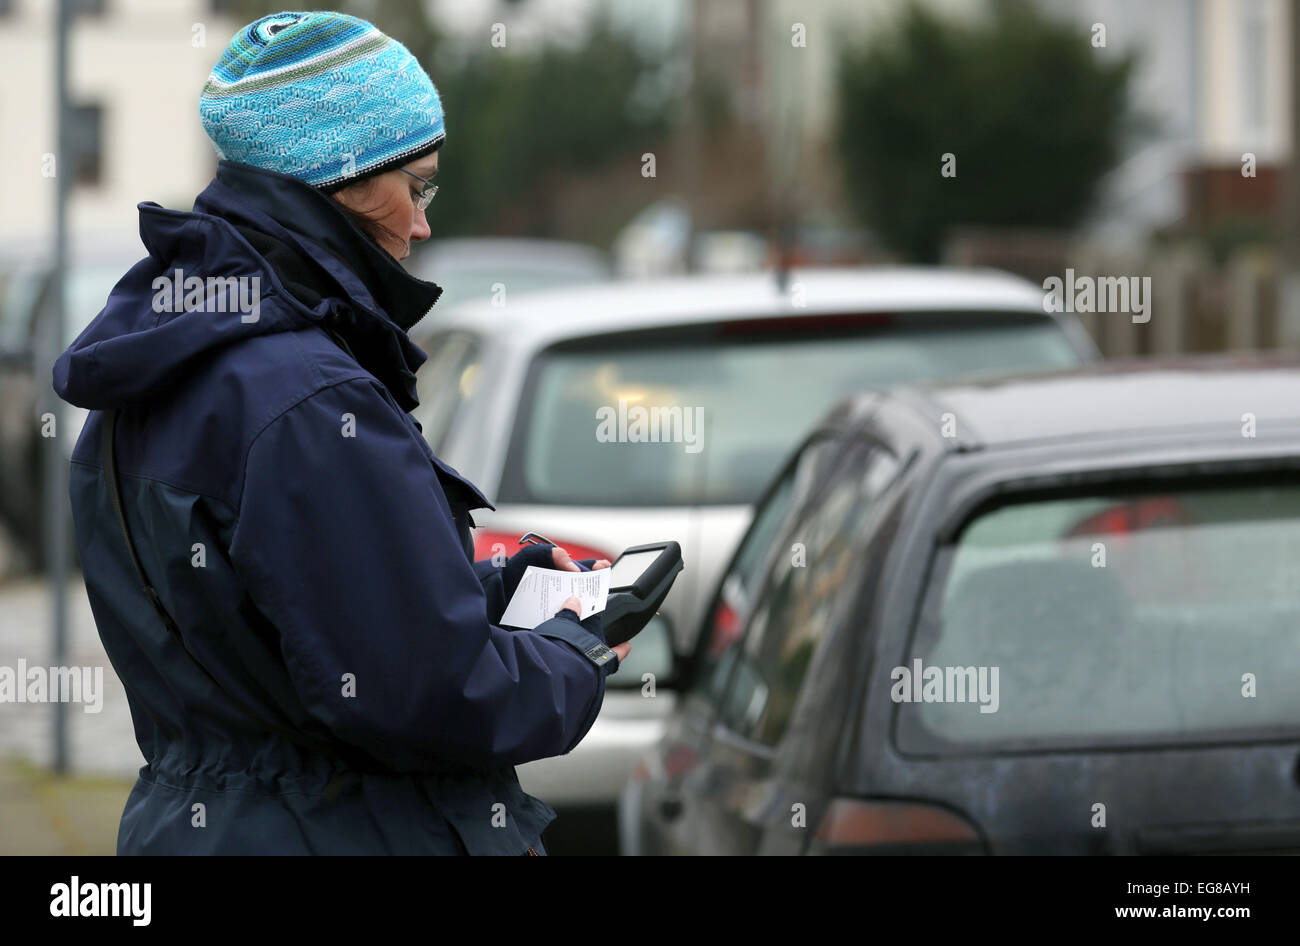 Rostock, Germany. 30th Jan, 2015. A raffic policewoman issues a parking ticket in Rostock, Germany, 30 January 2015. - Stock Image